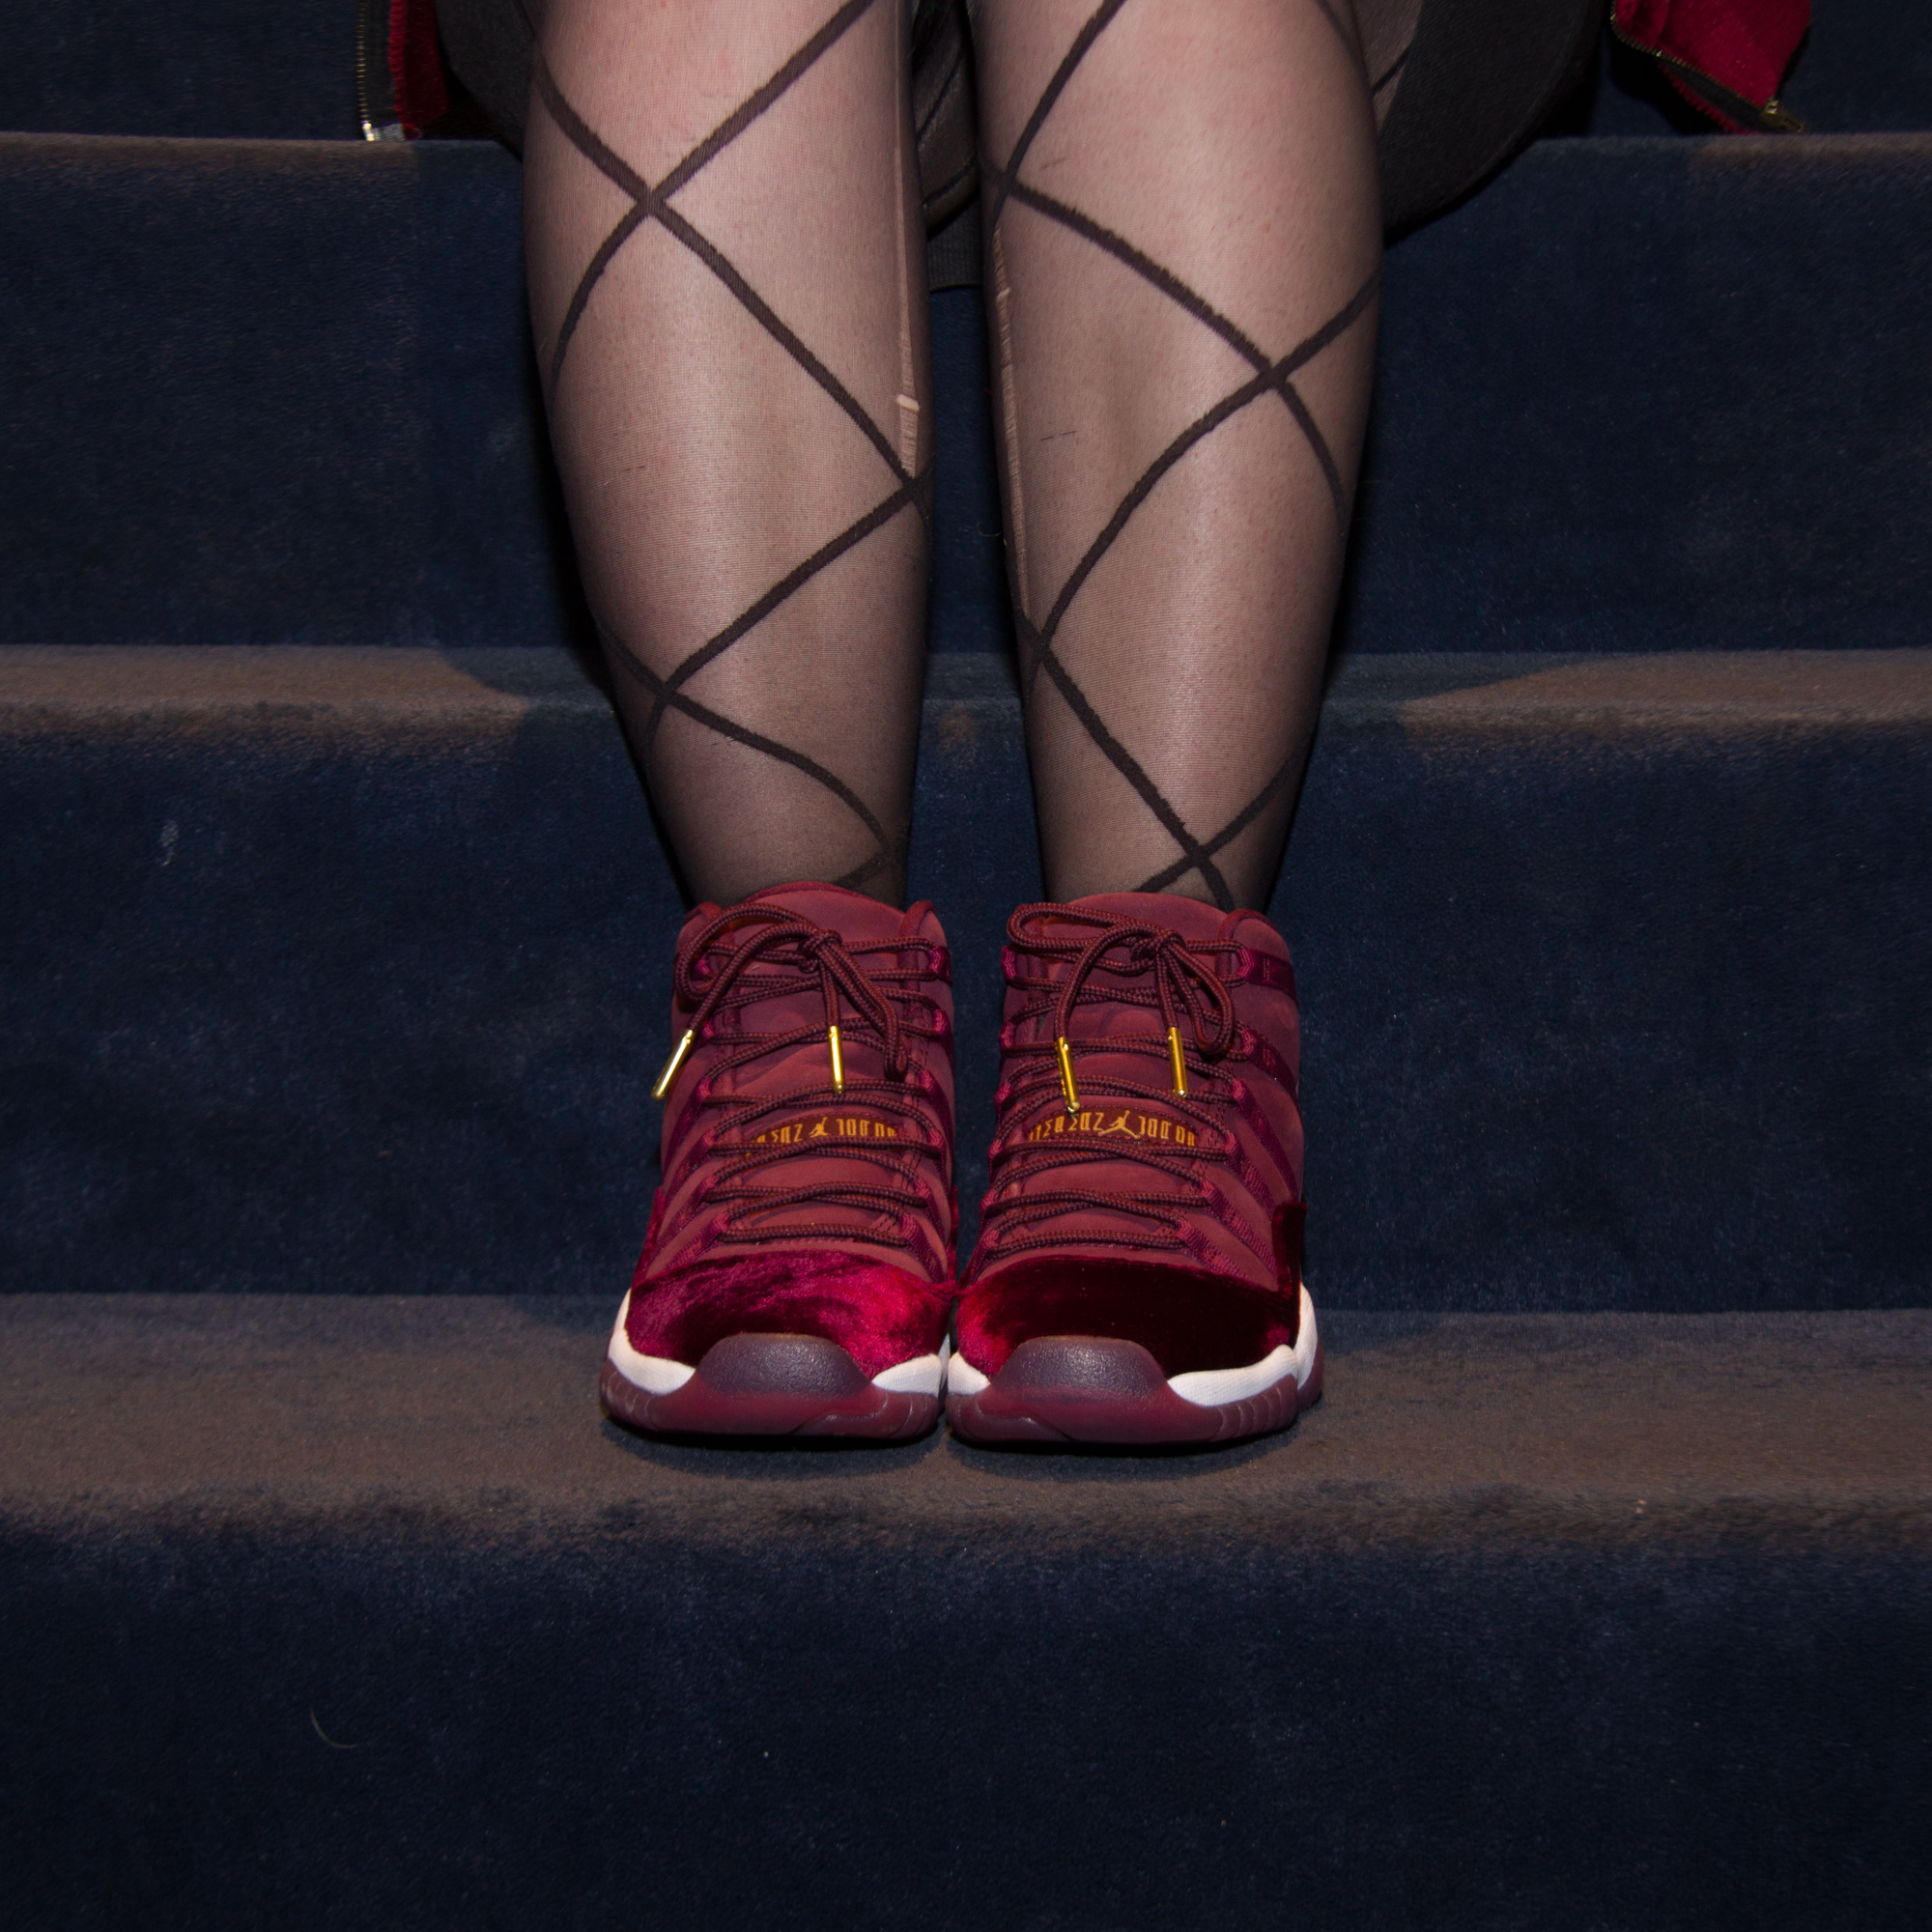 pretty nice 84705 7a89b shegotgame - Is that (Red) Velvet? Styling the new Air ...